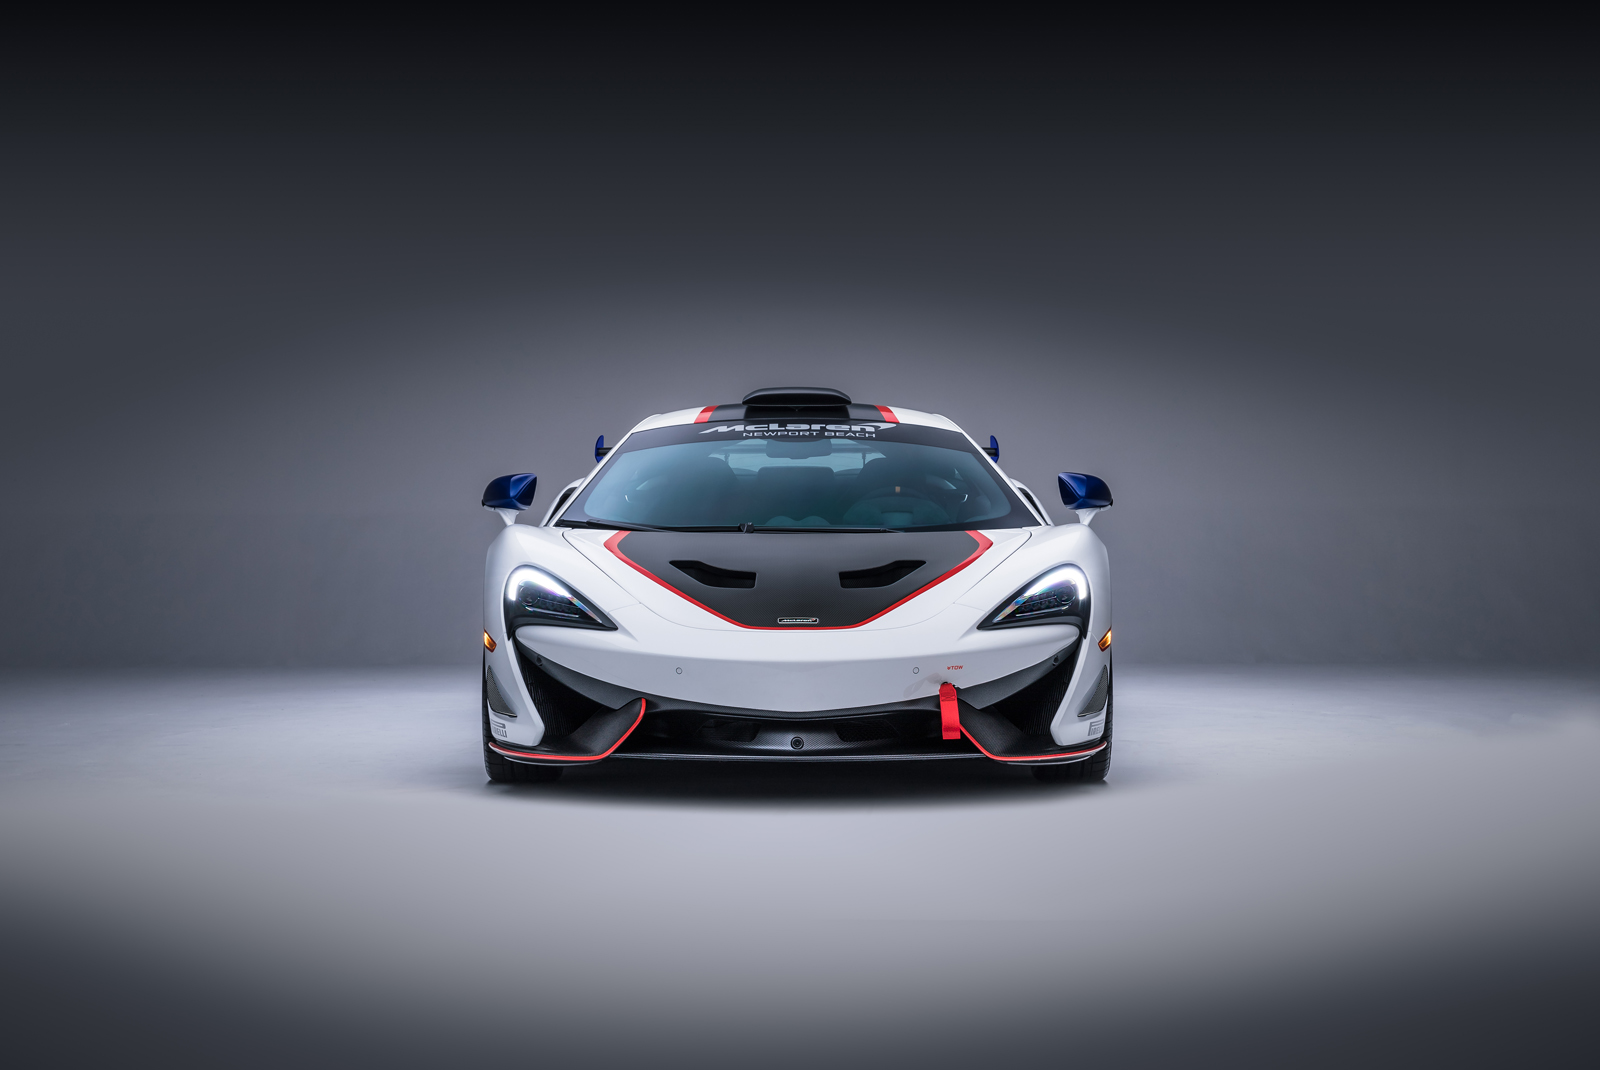 Mclaren Special Operations Gives The 570s A Motorsport